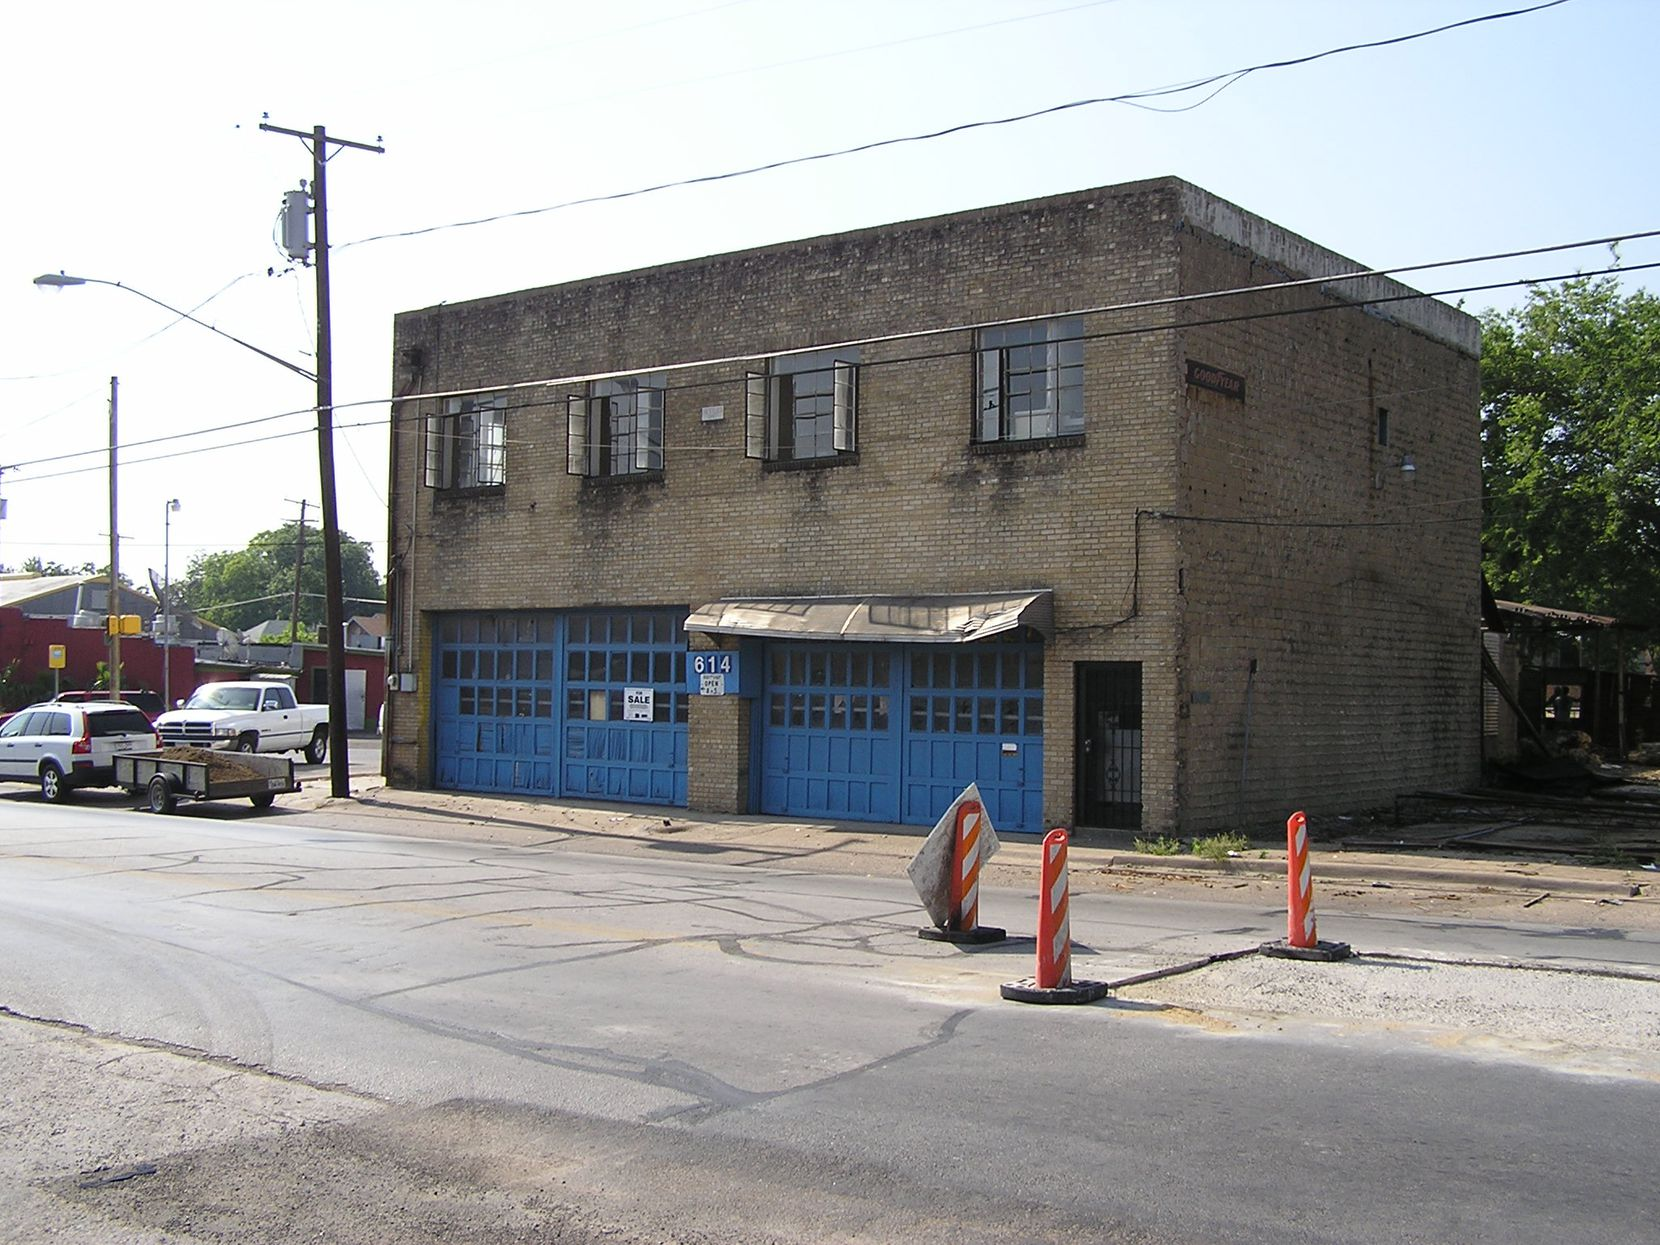 Take a trip back in time: Before Bolsa opened in 2008, it was a body shop. The building dates back to 1947, and Bolsa was just its second tenant, behind its original use as Settles Garage.